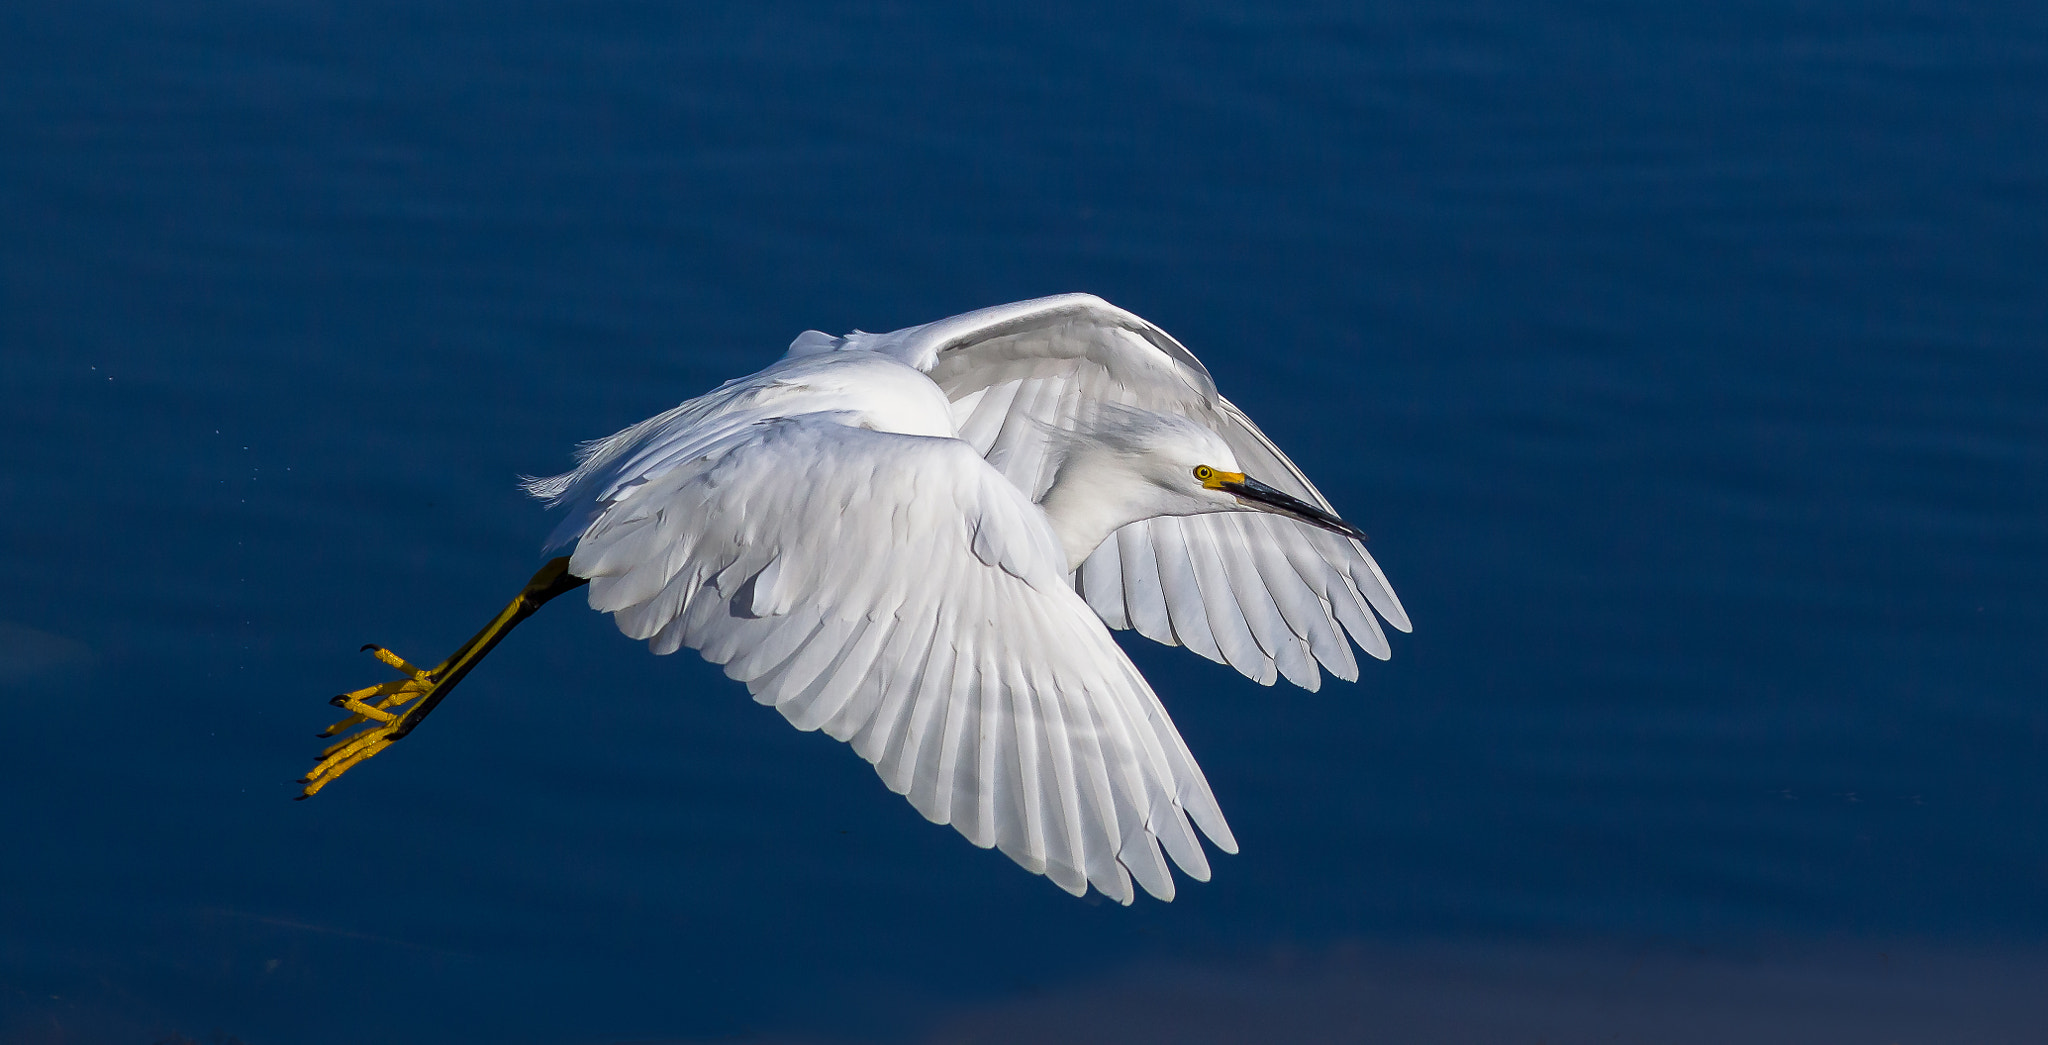 Photograph Snowy Egret by Timothy Fairley on 500px